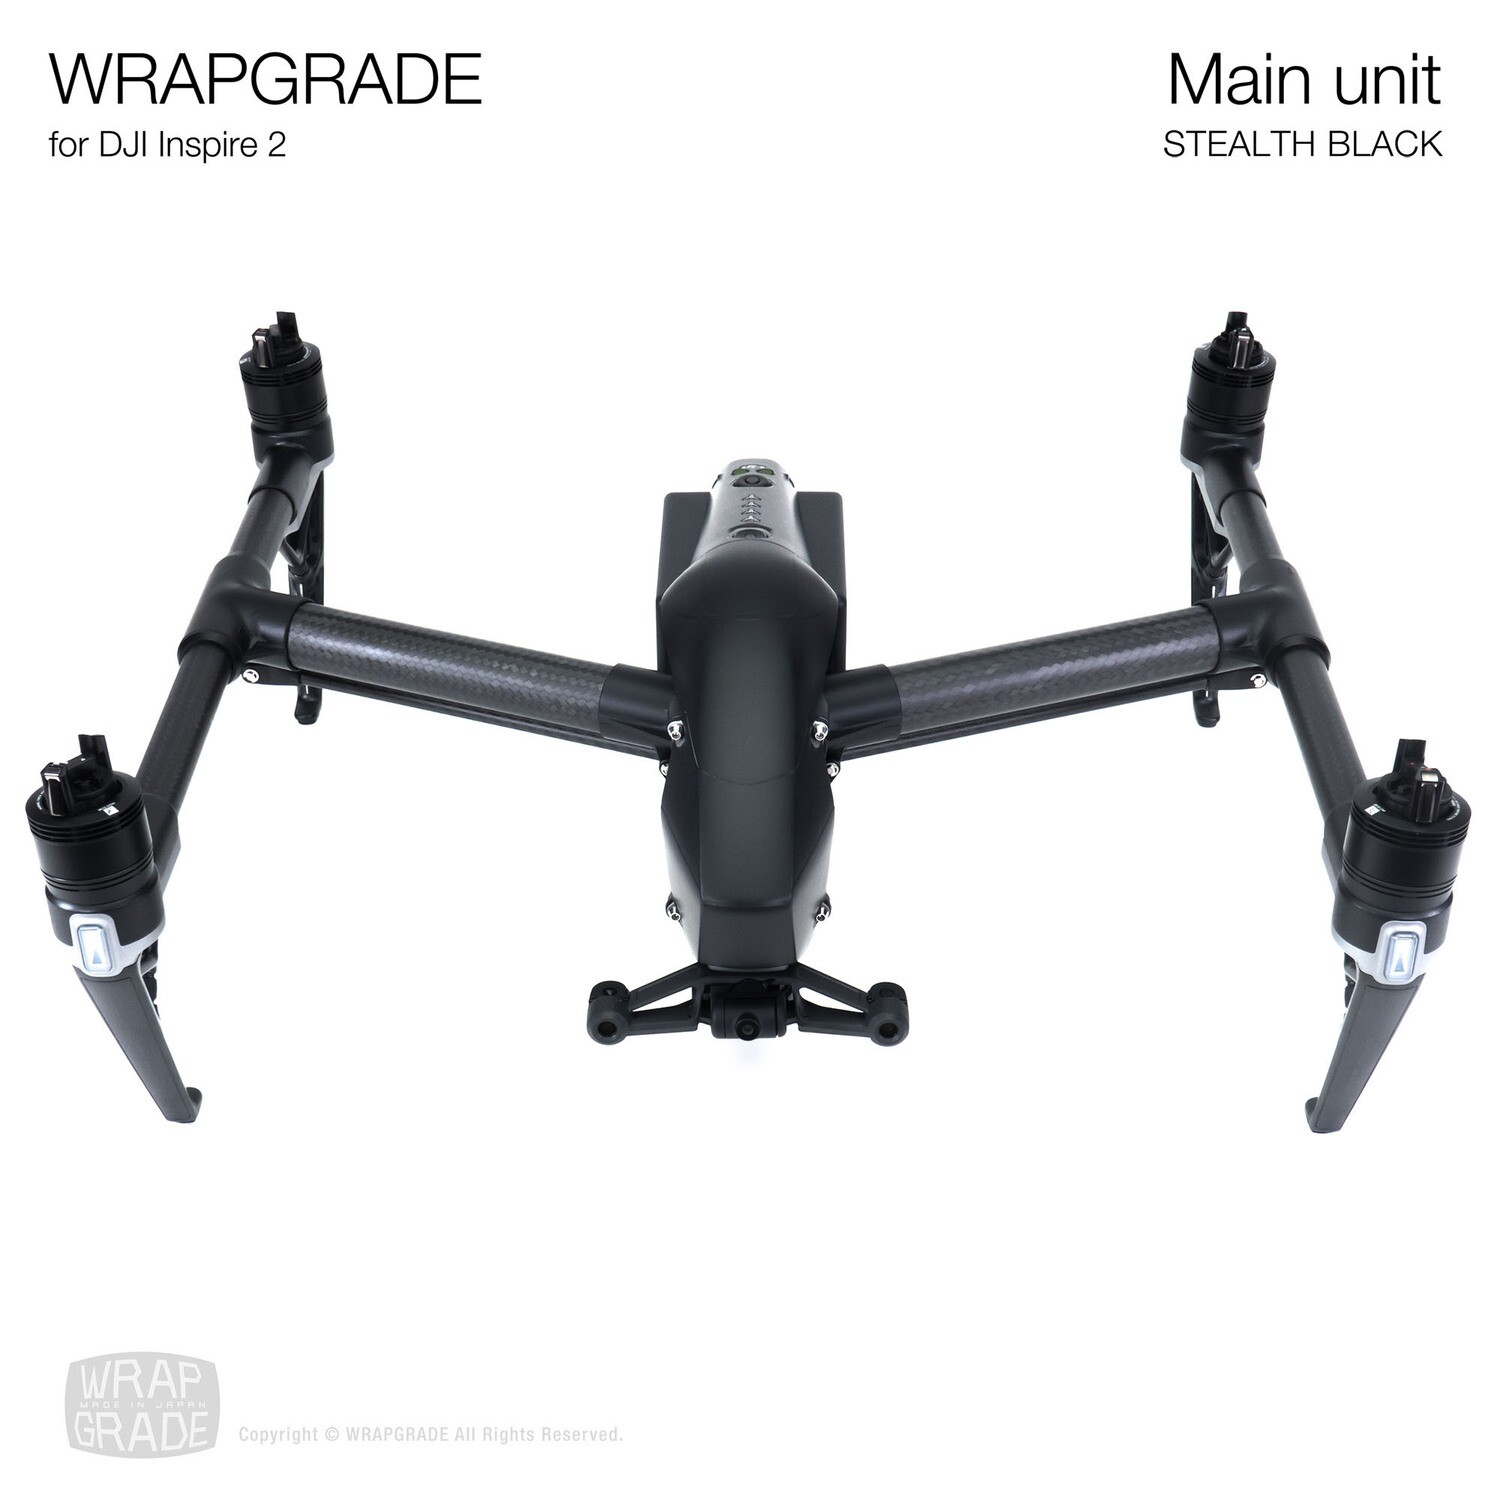 WRAPGRADE for DJI Inspire 2 | Main Unit (STEALTH BLACK)